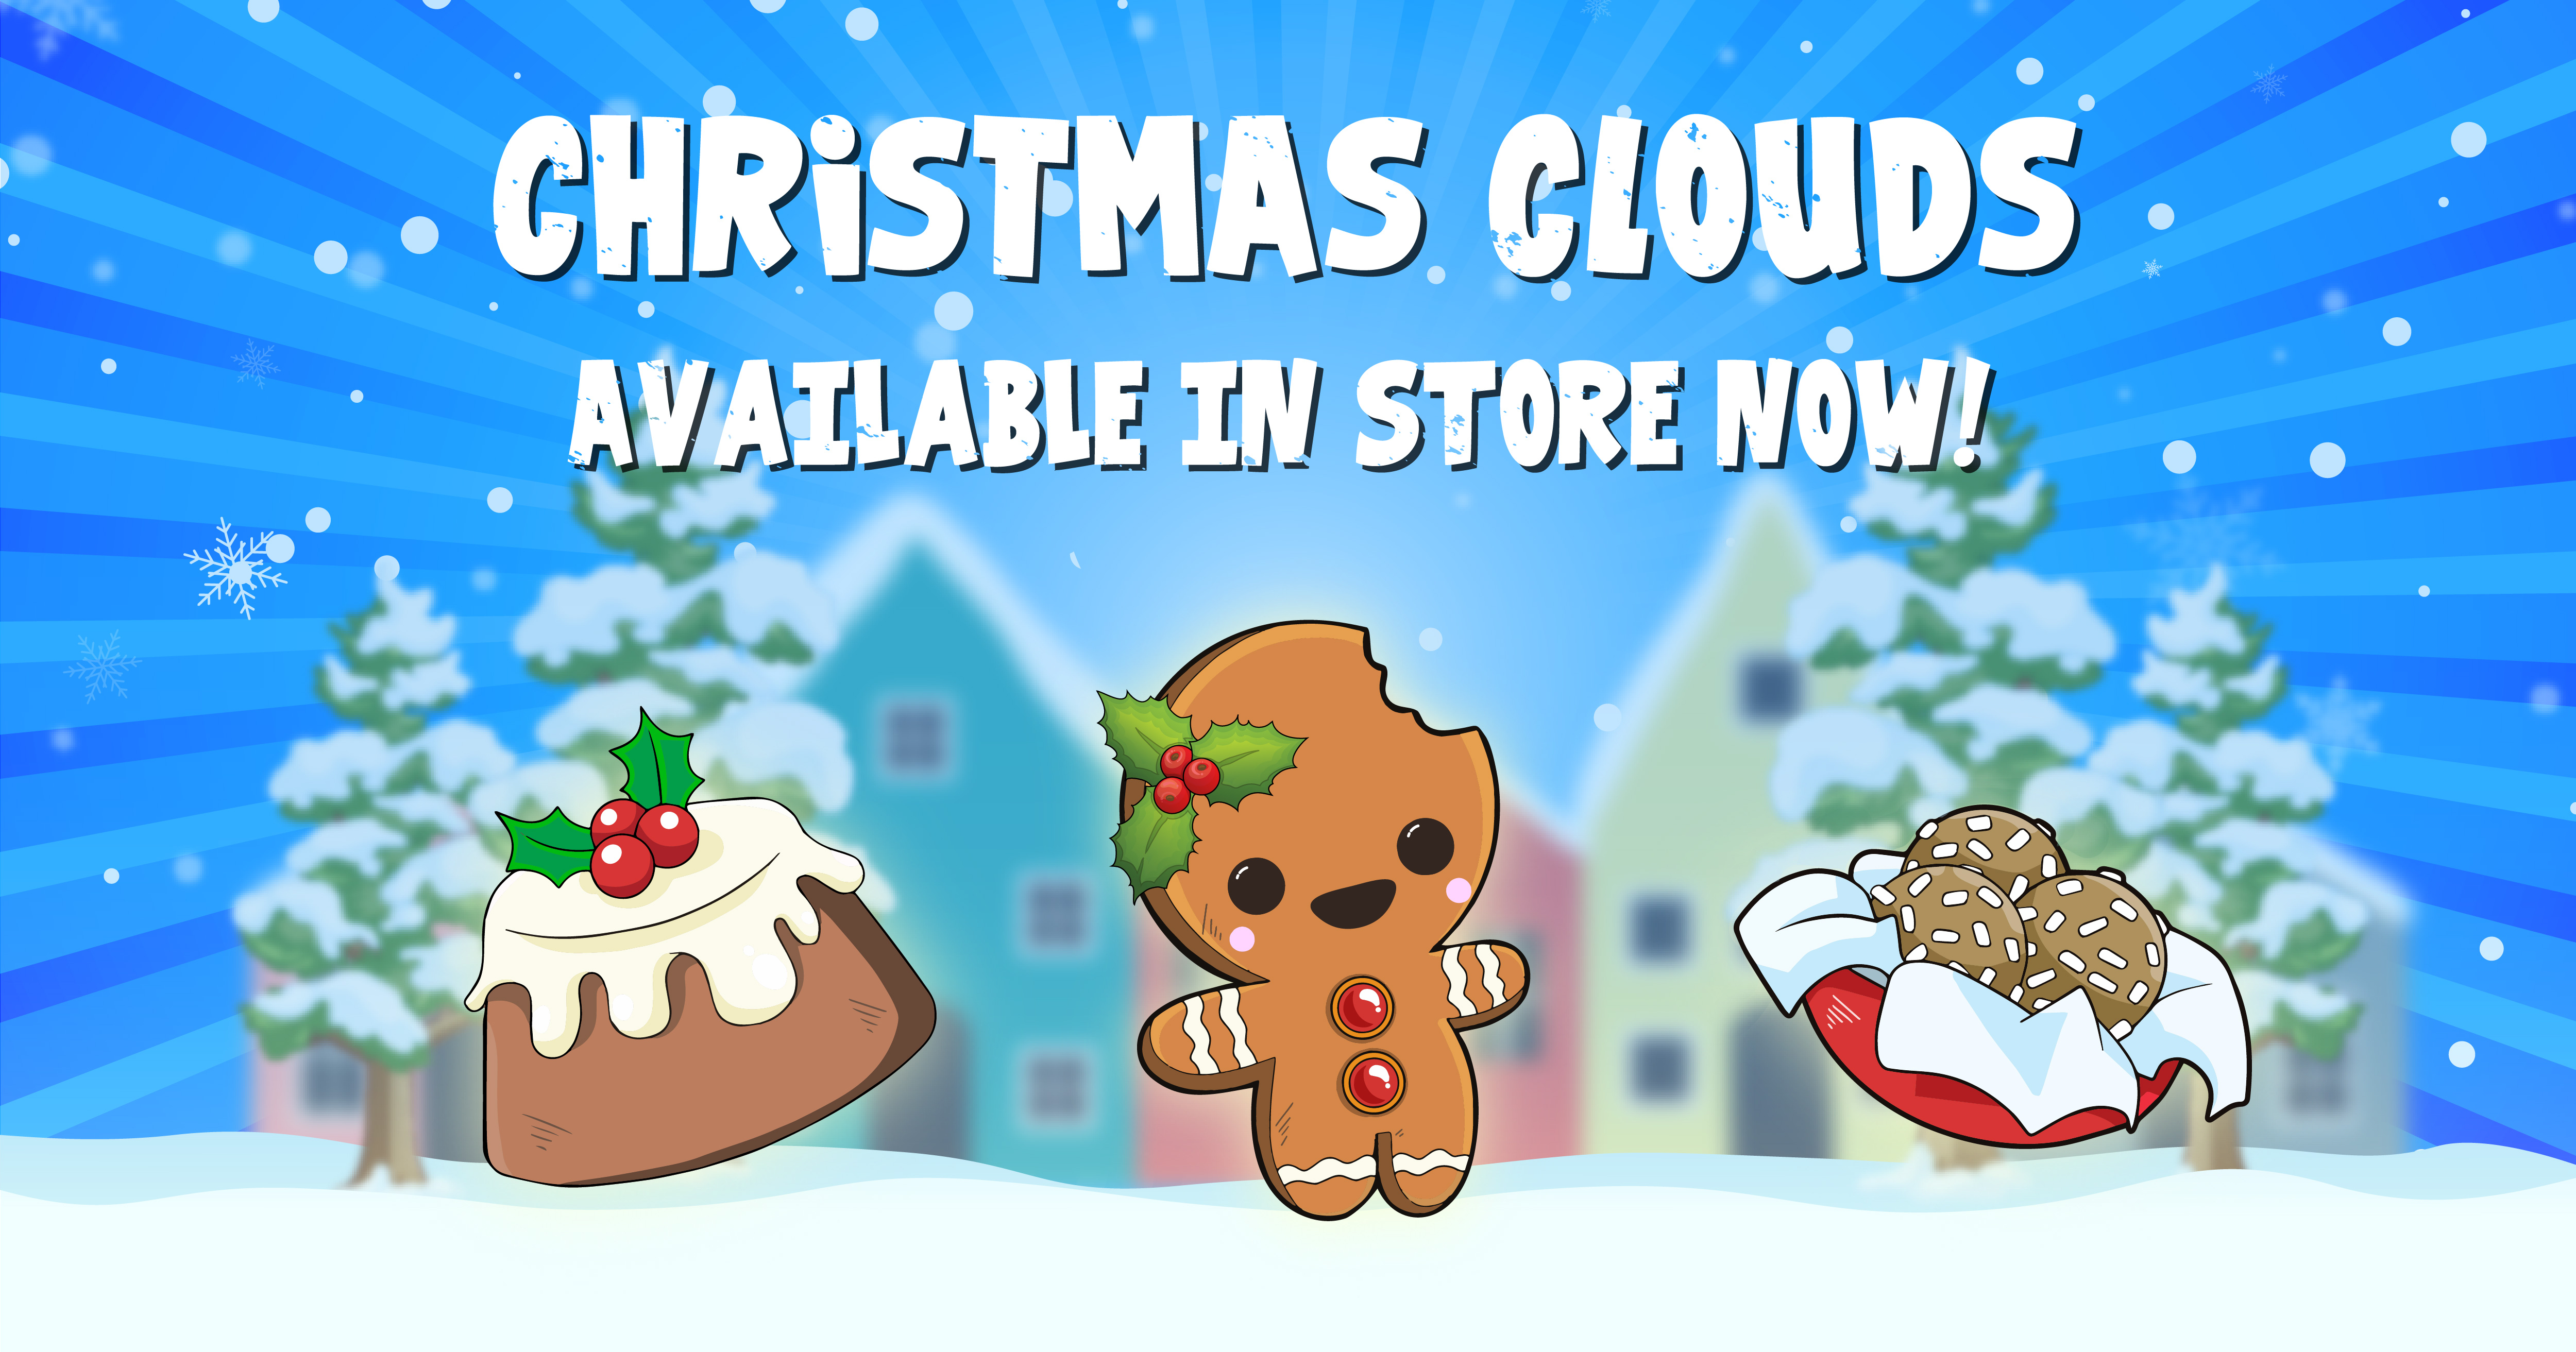 Christmas Clouds Image